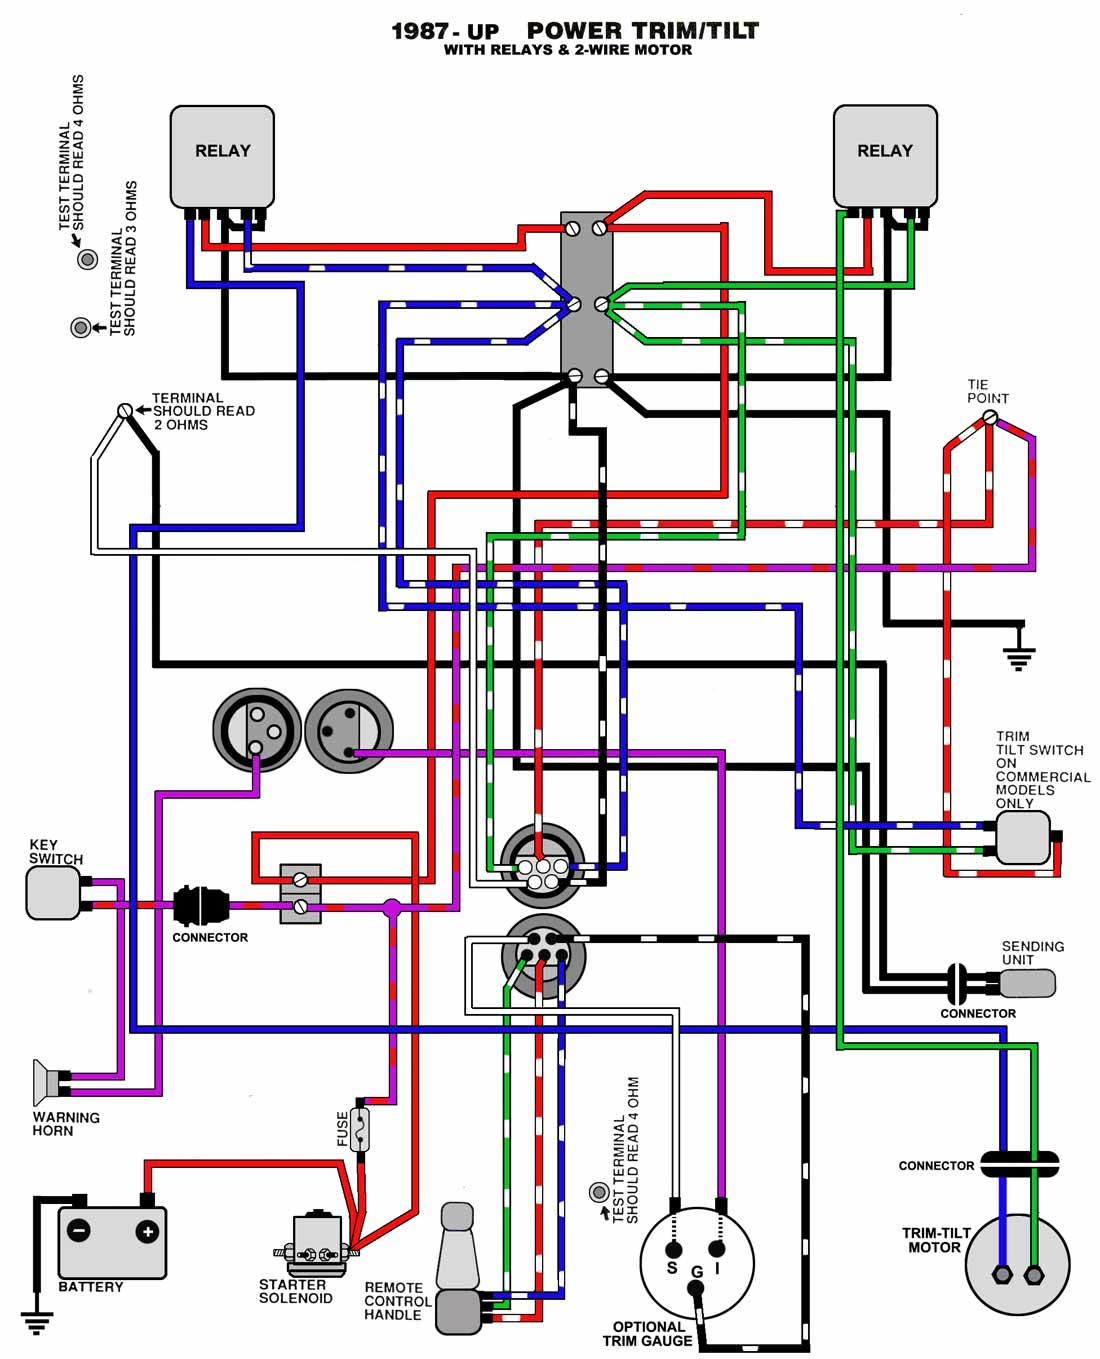 TnT_87_UP mastertech marine evinrude johnson outboard wiring diagrams mercury trim switch wiring diagram at bayanpartner.co